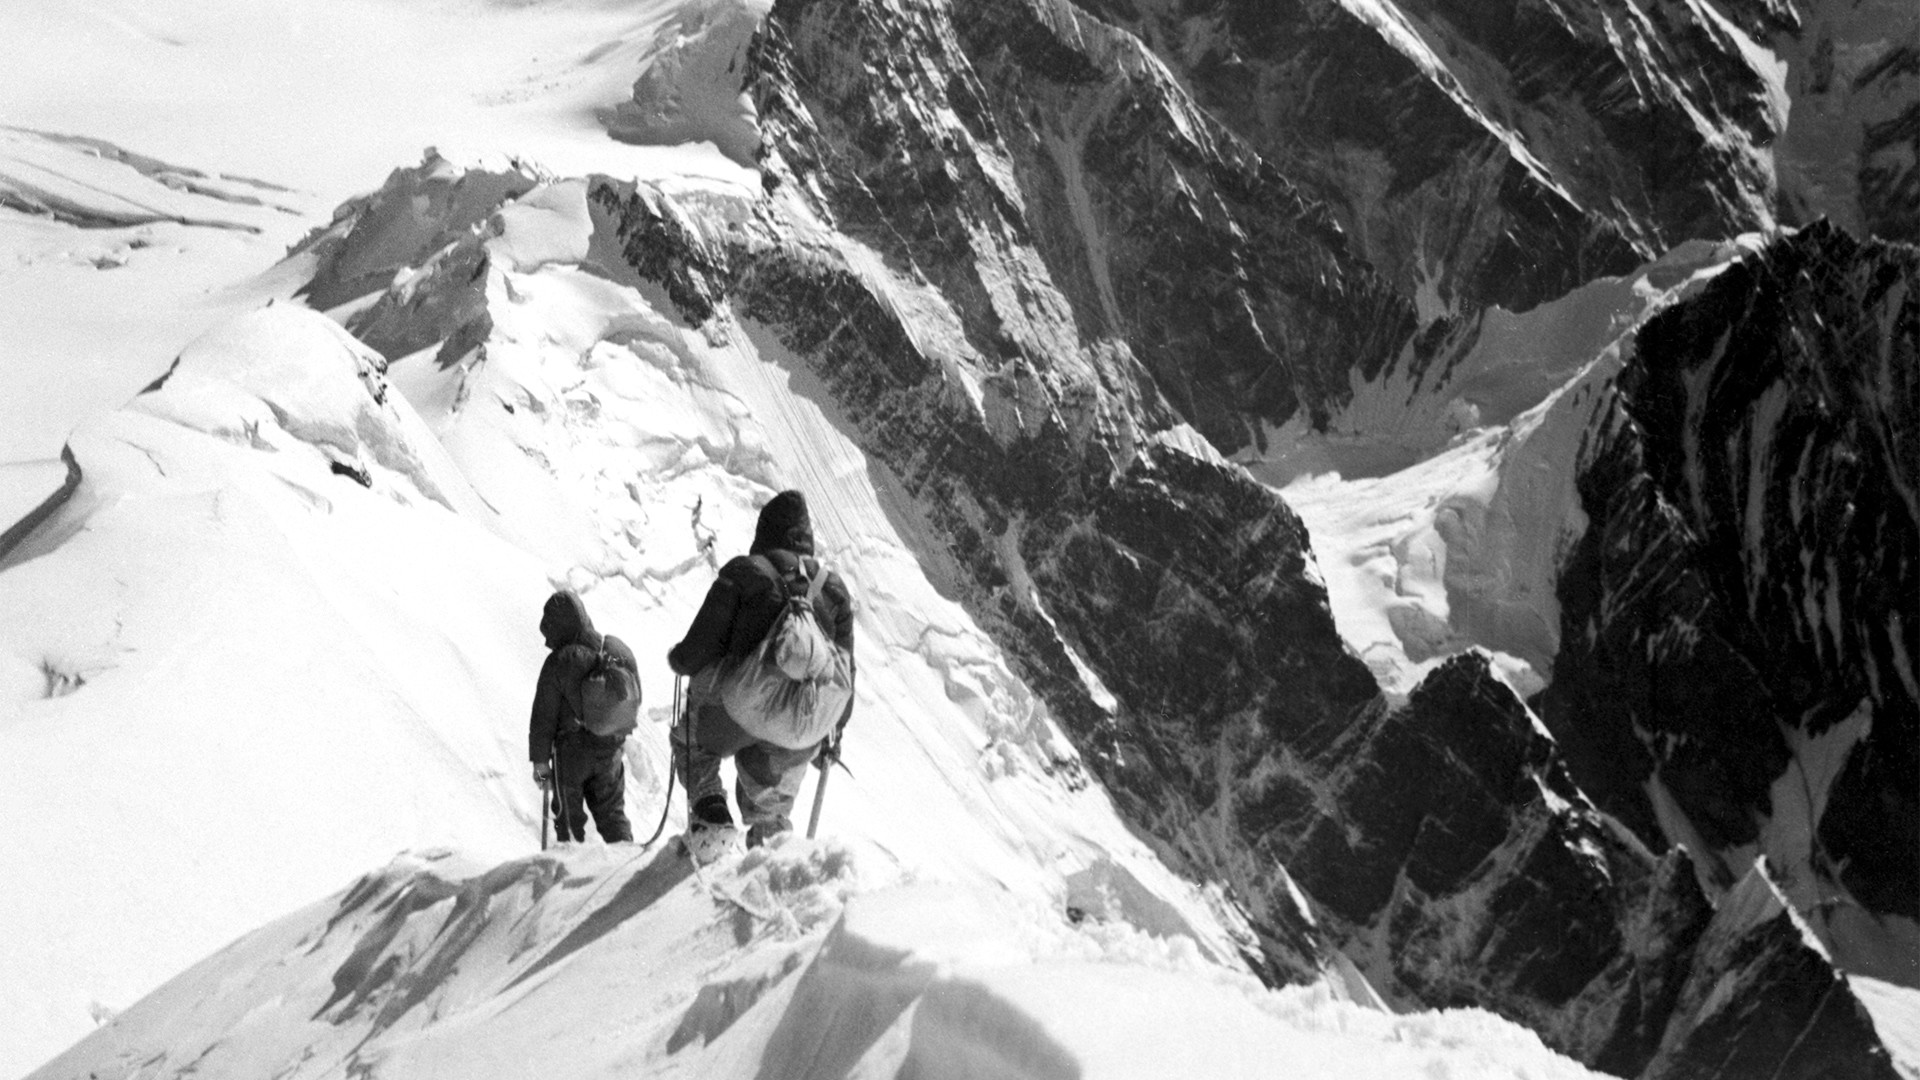 """In 1932 two alpinist groups came across a mysterious peak undocumented by previous expeditions - 7,495 m above sea level."""